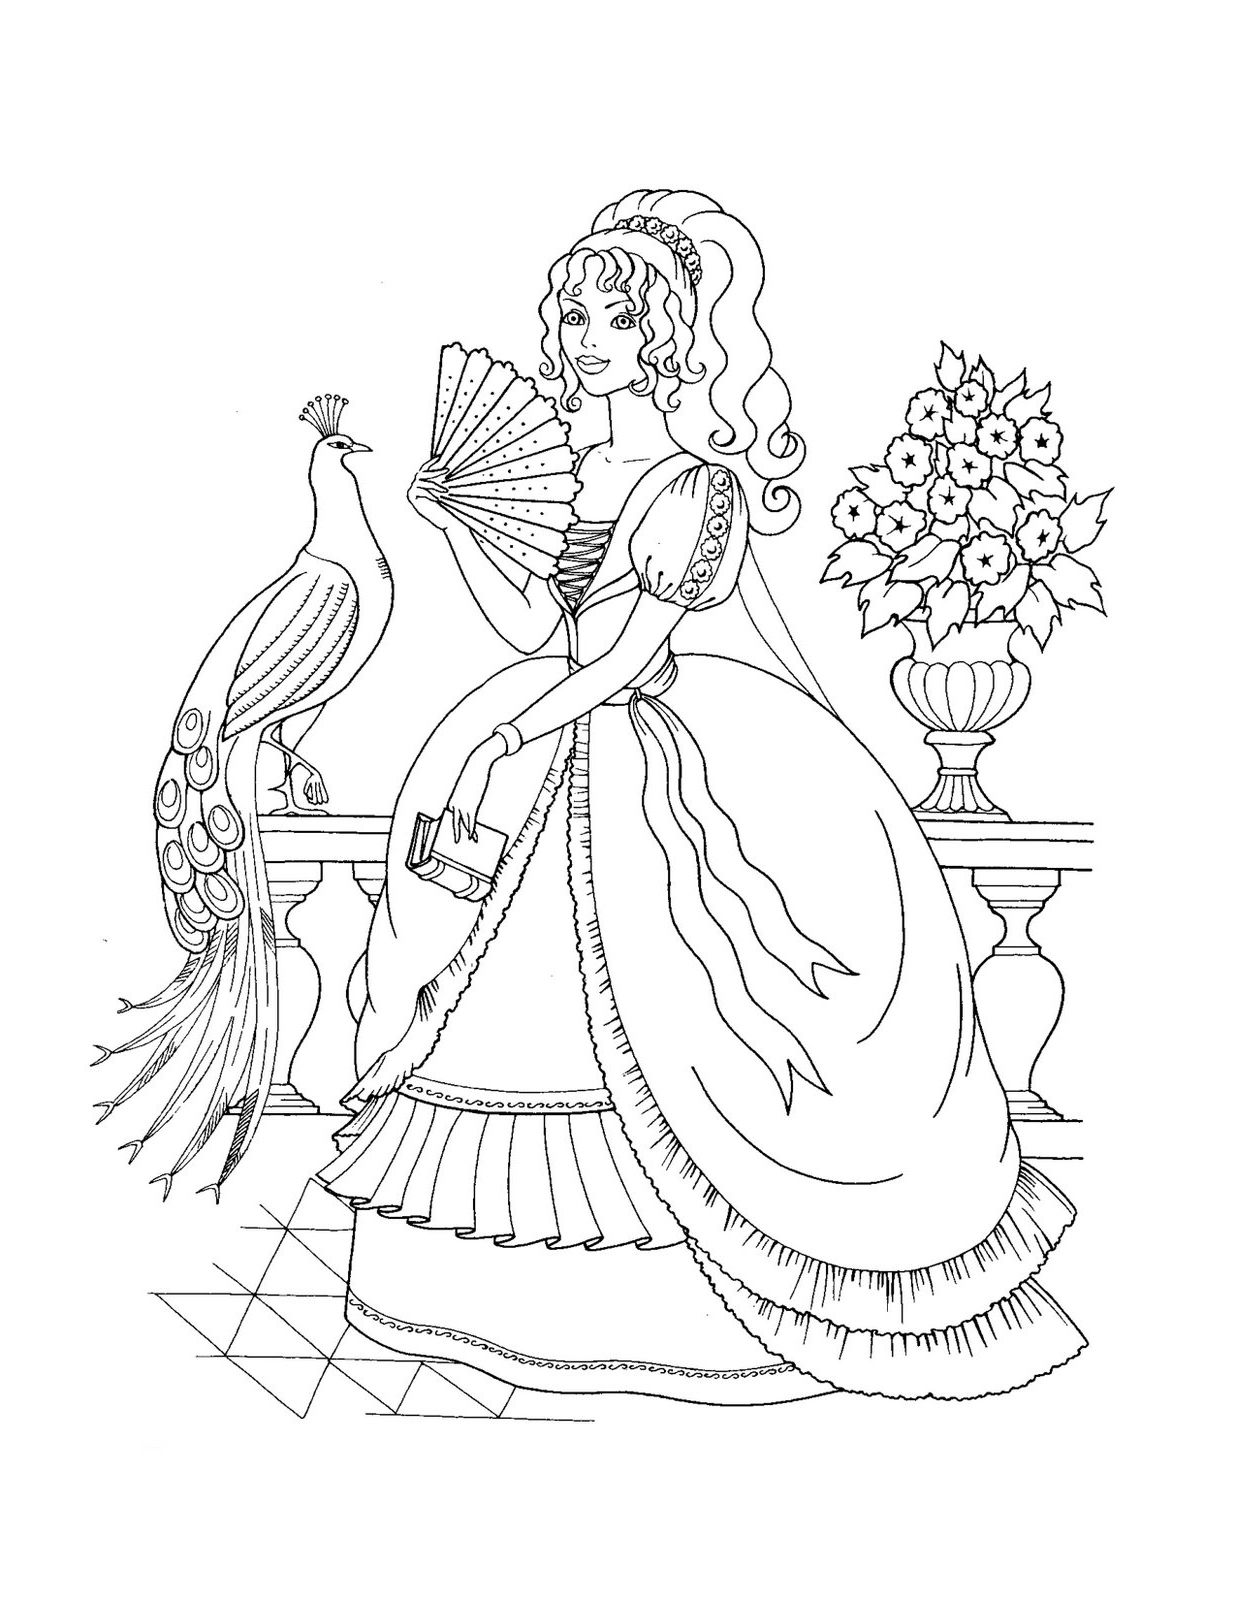 princess coloring pages printable Princess Coloring Pages   Best Coloring Pages For Kids princess coloring pages printable